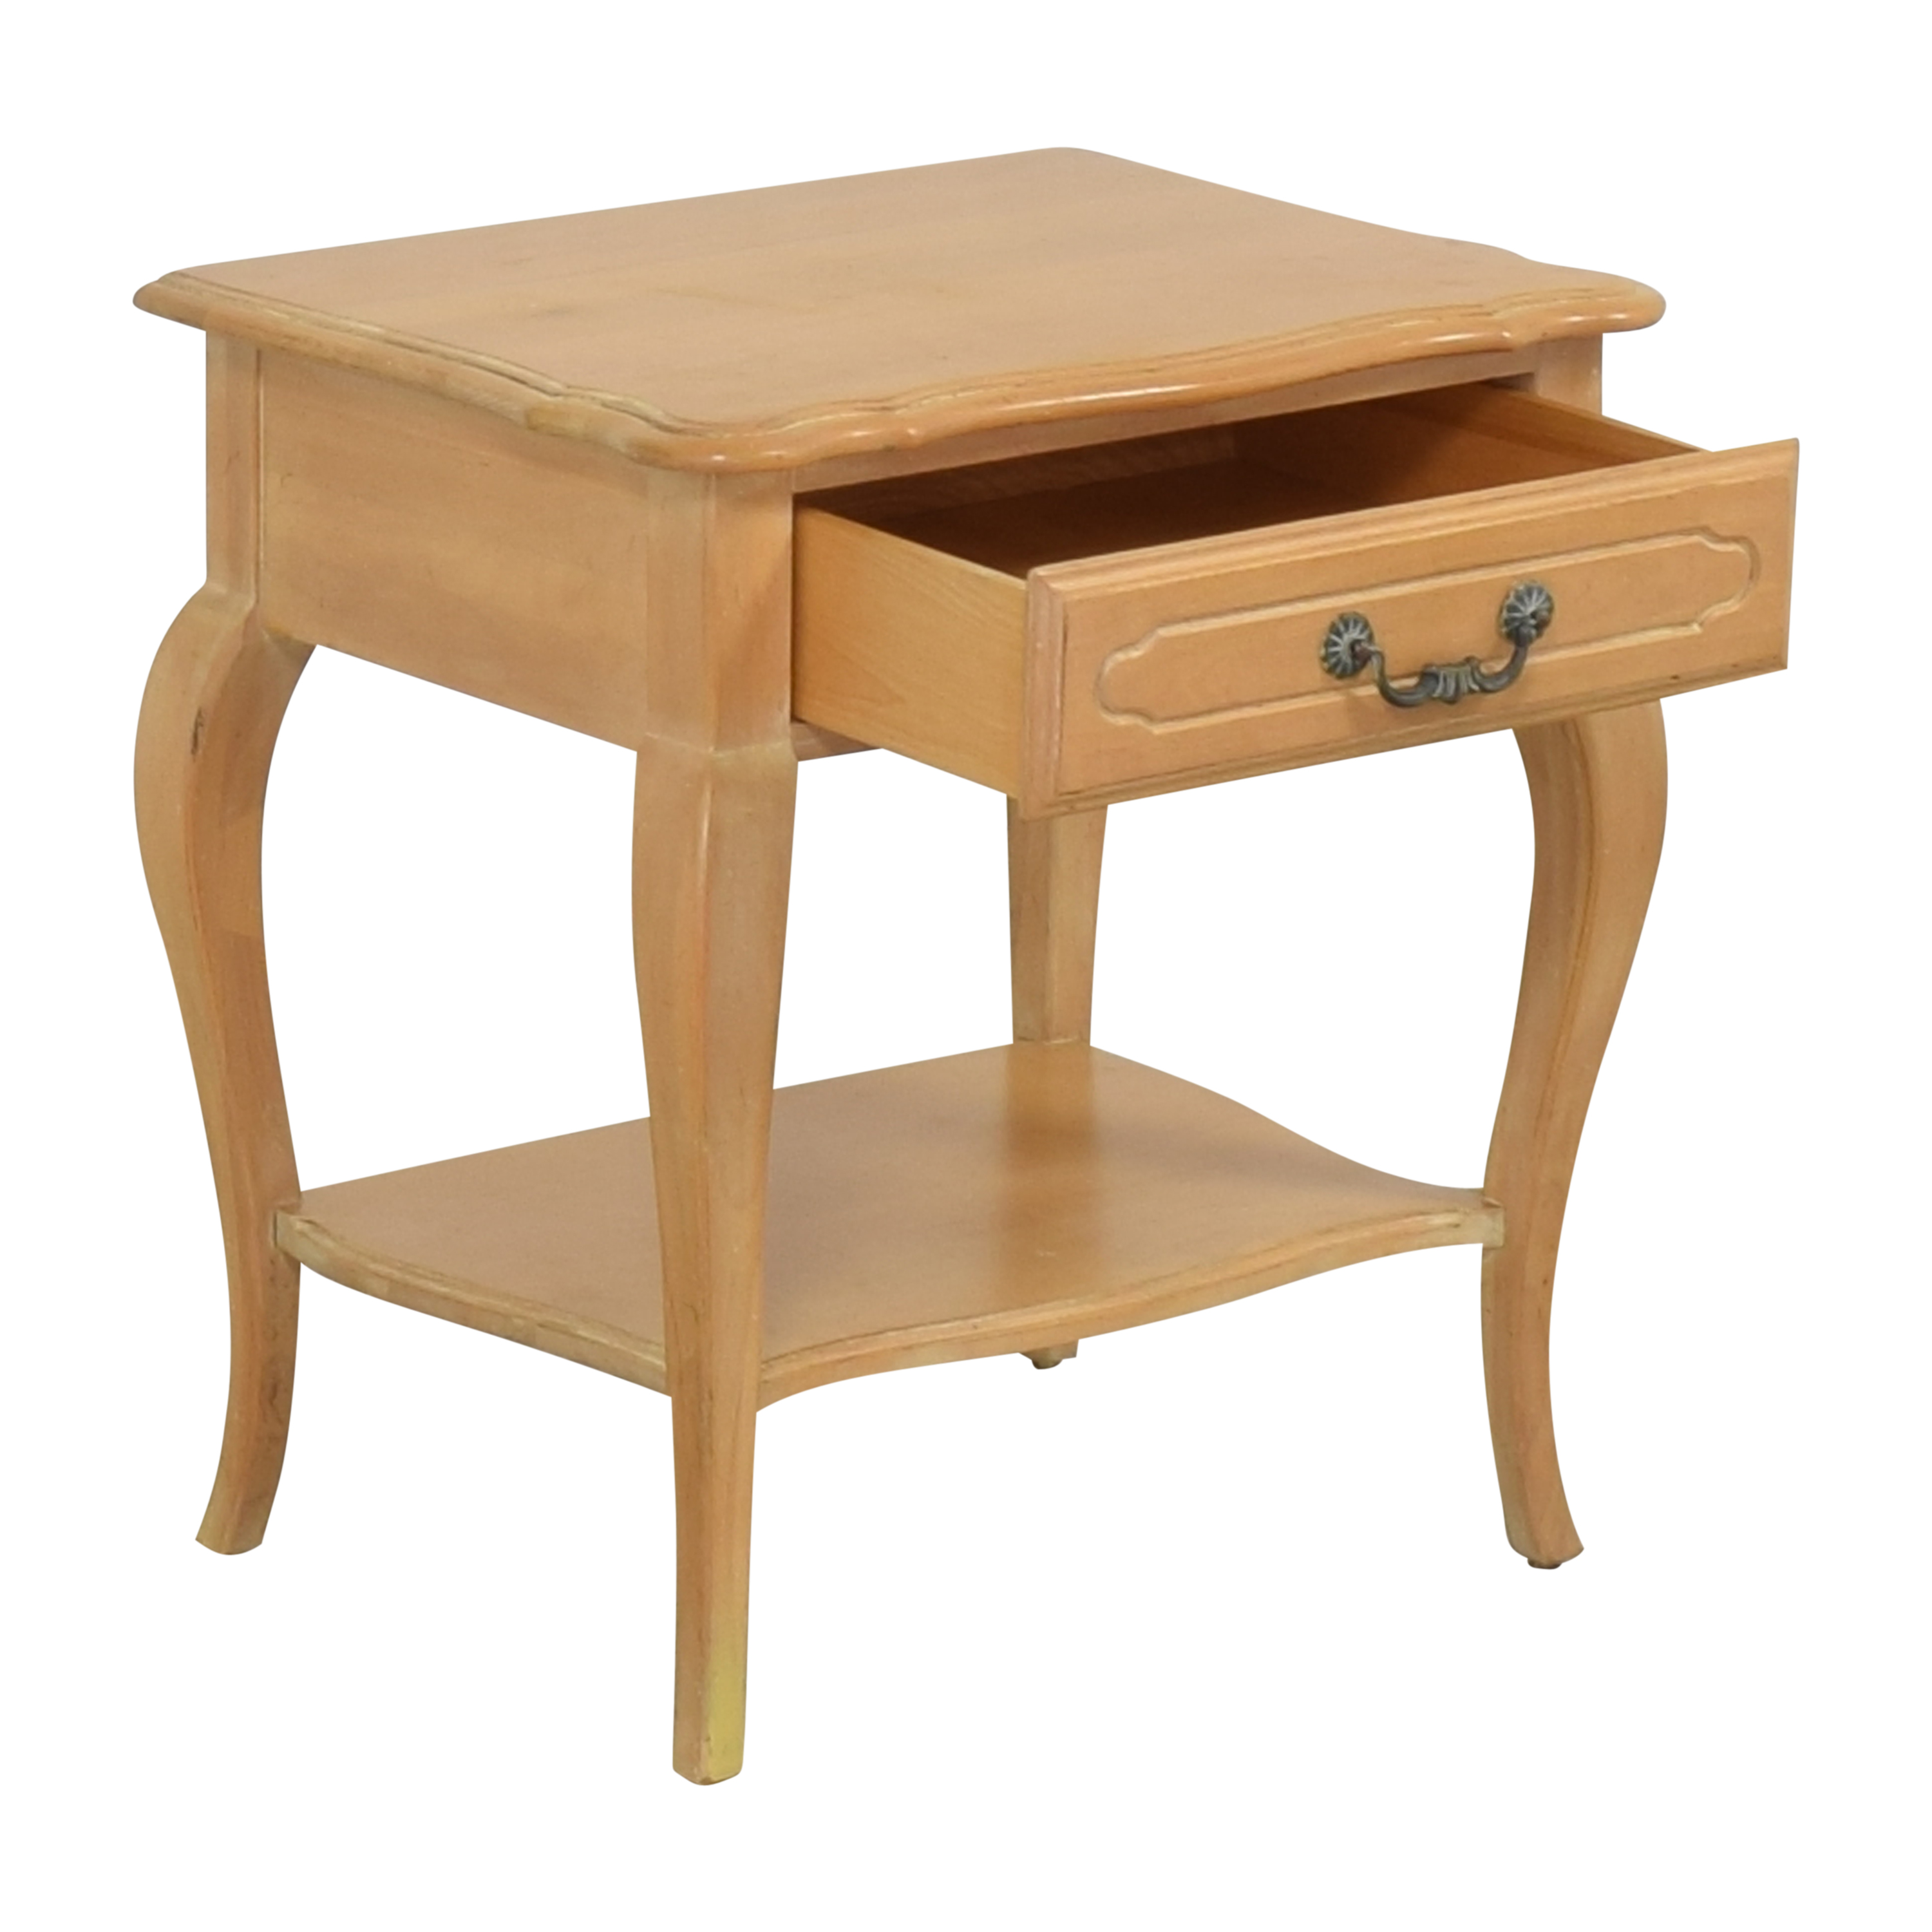 Ethan Allen Ethan Allen Country French Nightstand dimensions